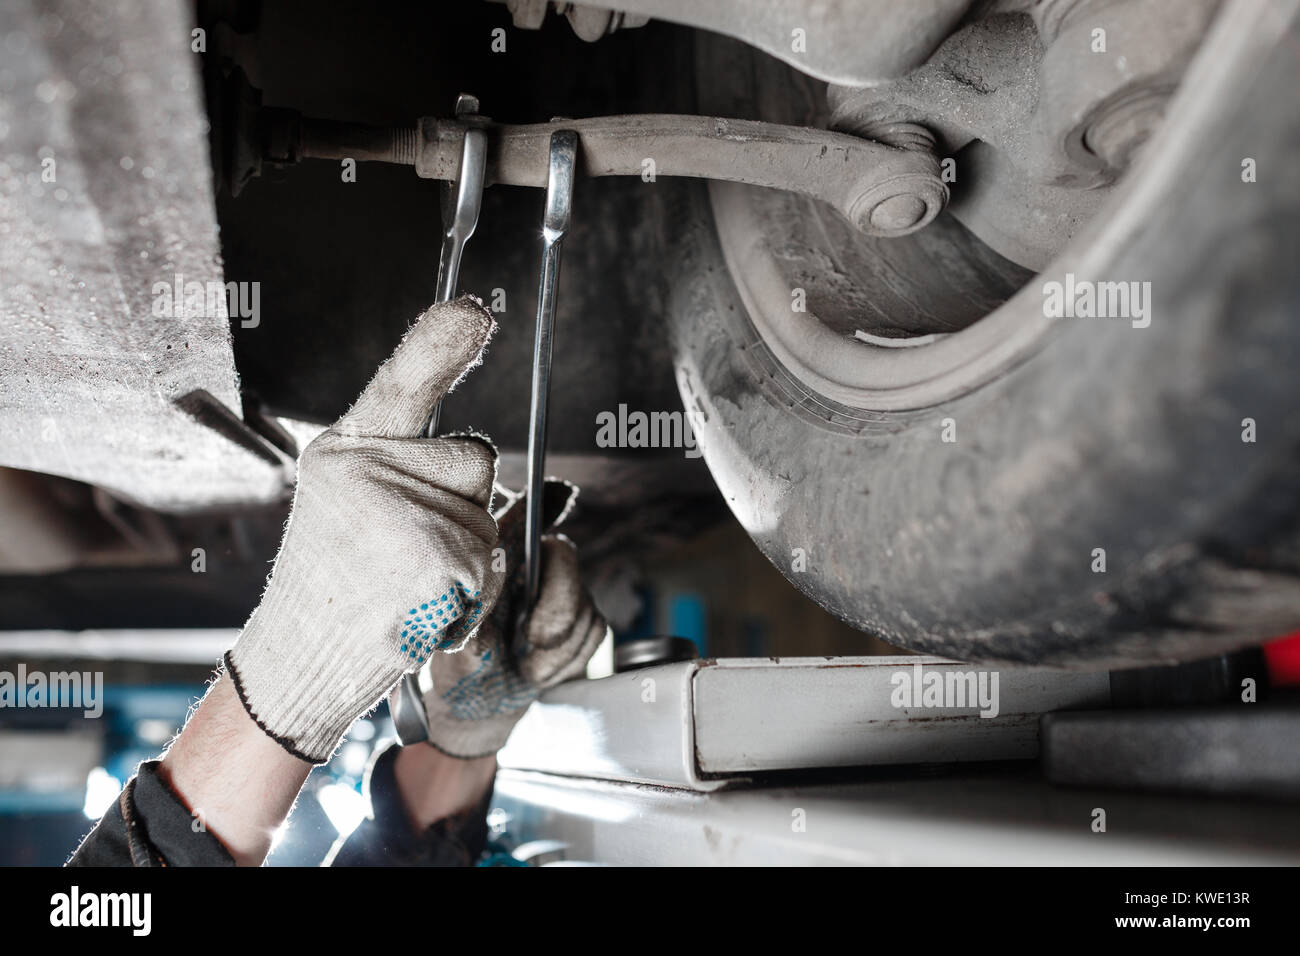 car mechanic examining car suspension of lifted automobile at repair service station - Stock Image